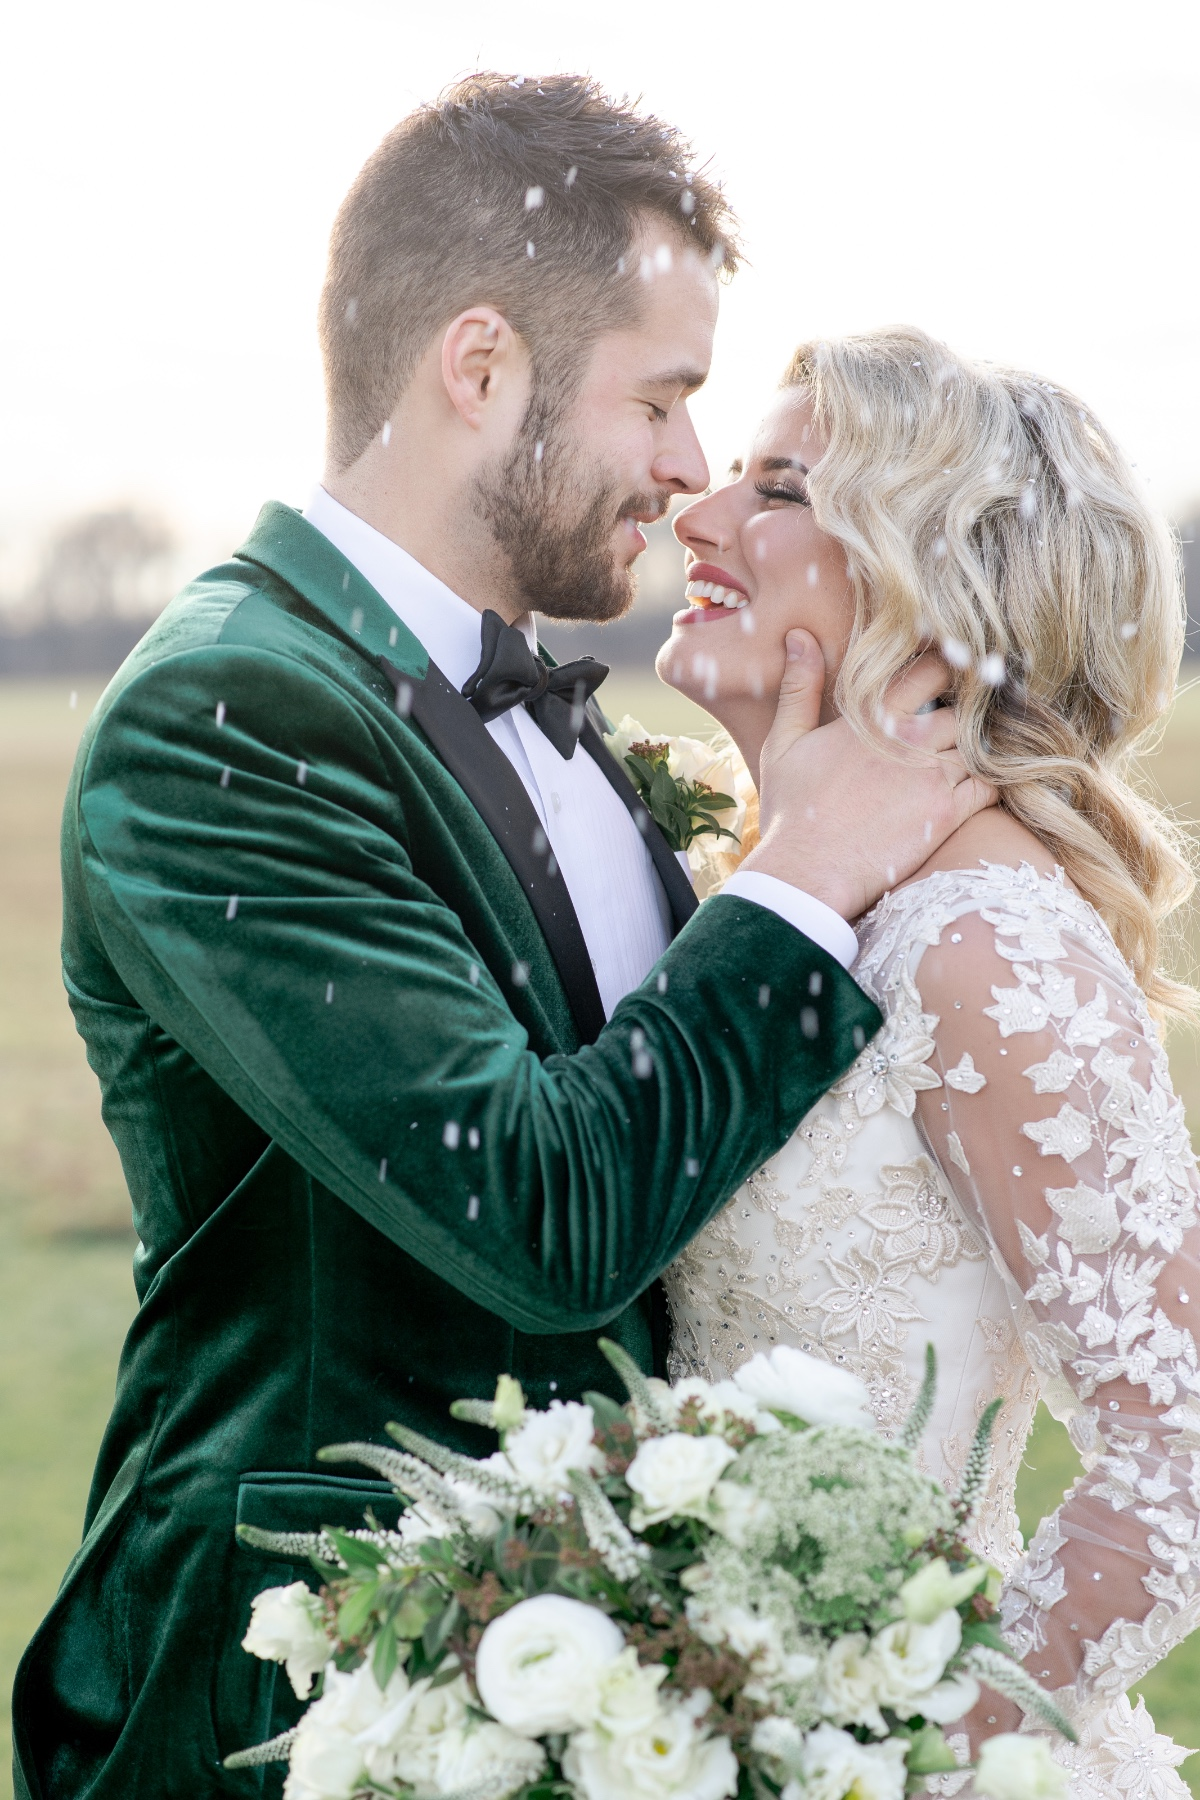 Green and white winter wedding inspiration